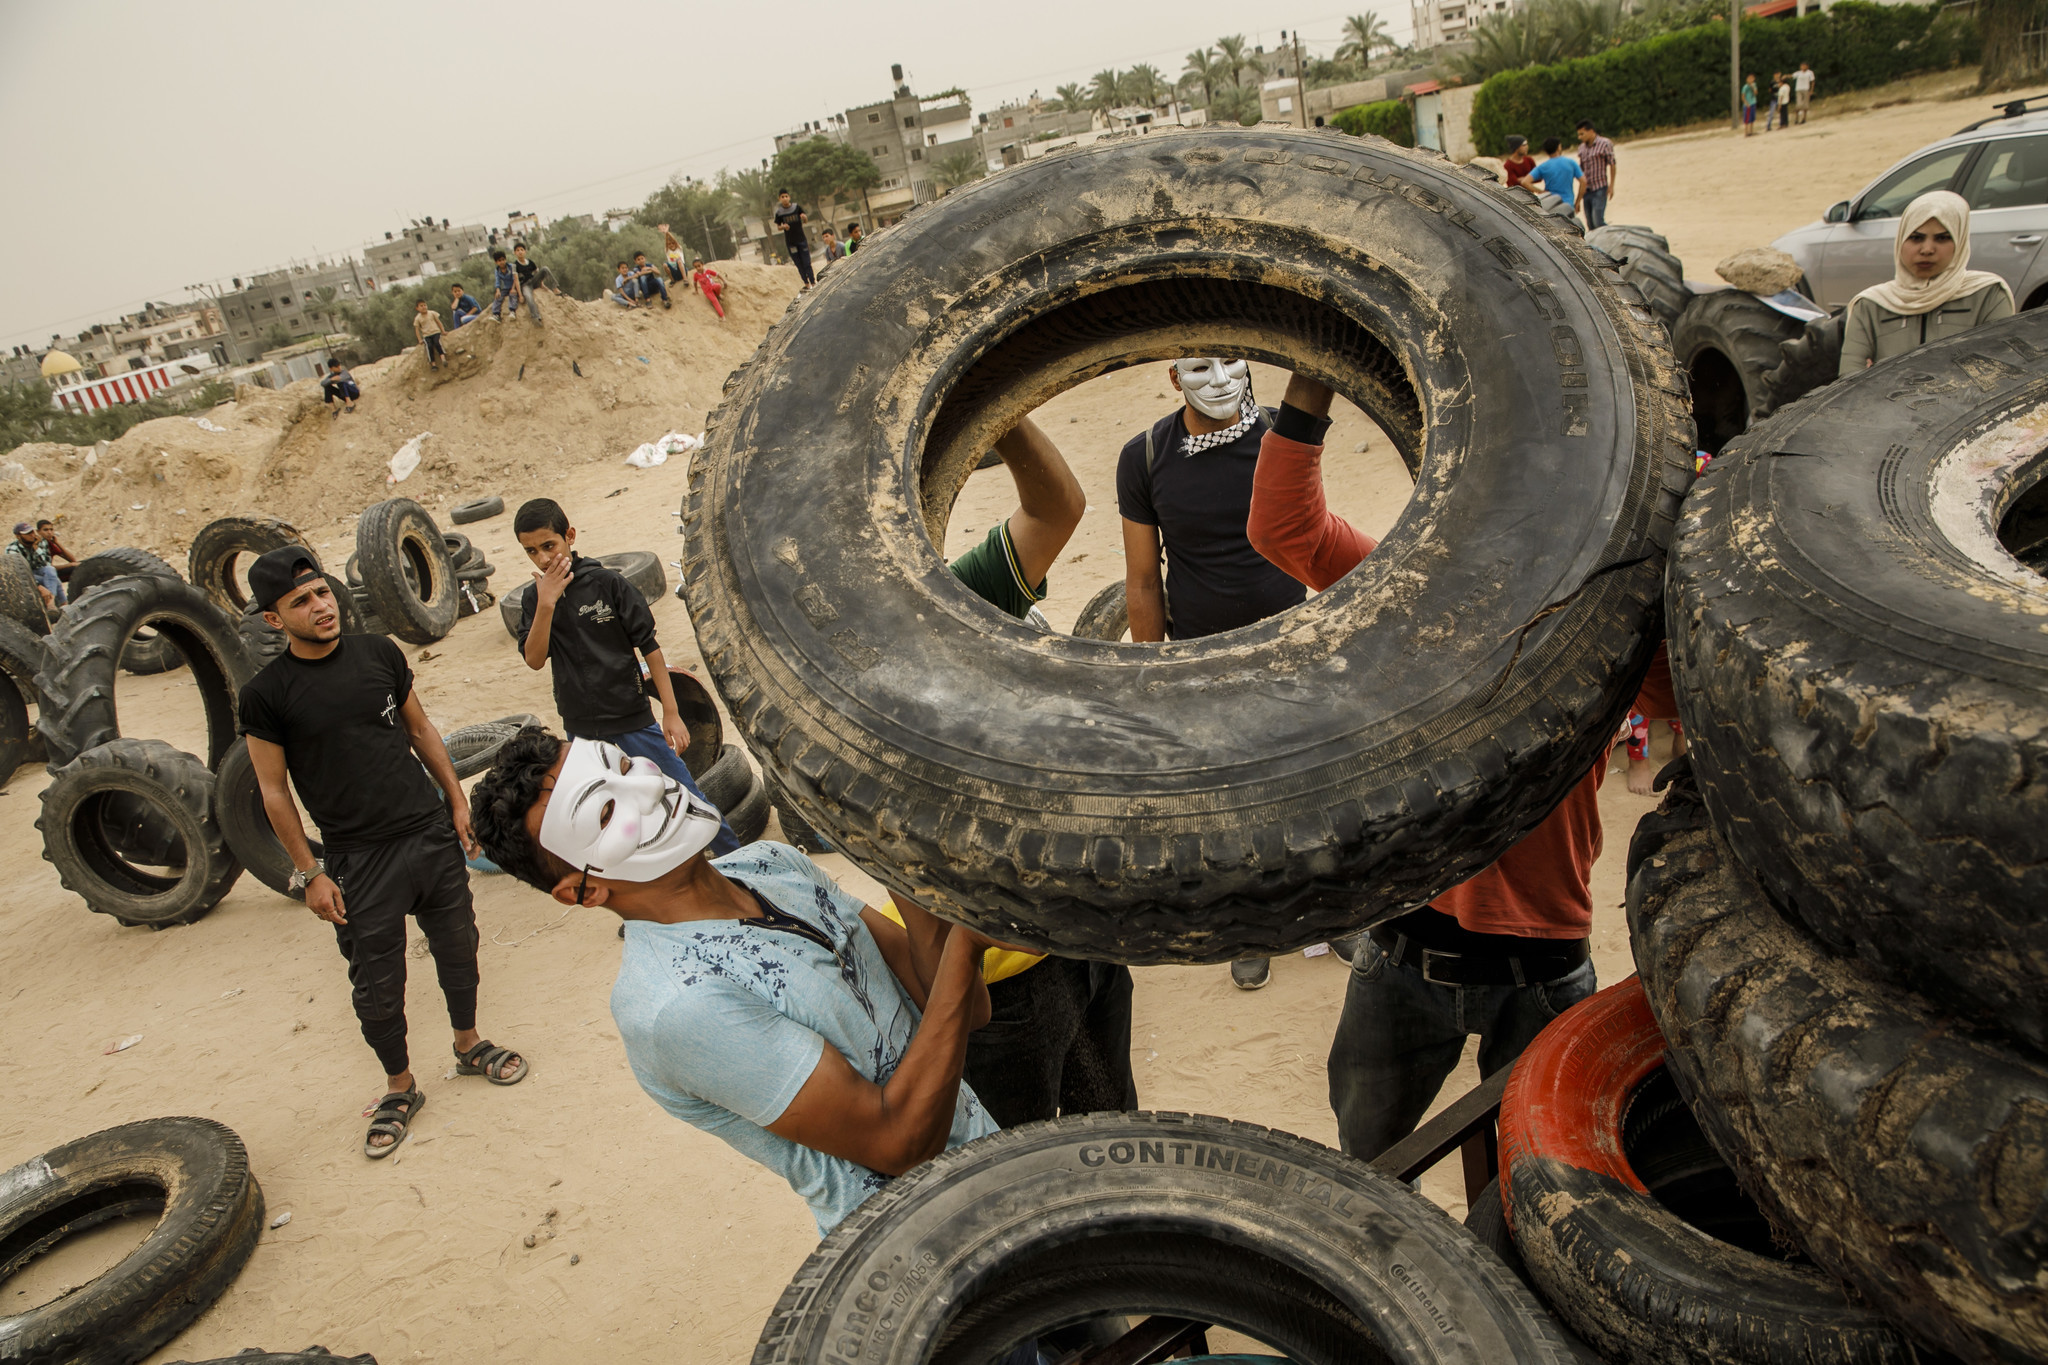 KHAN YOUNIS , GAZA STRIP — THURSDAY, MAY 10, 2018: Palestinian youth organize and transport tires t